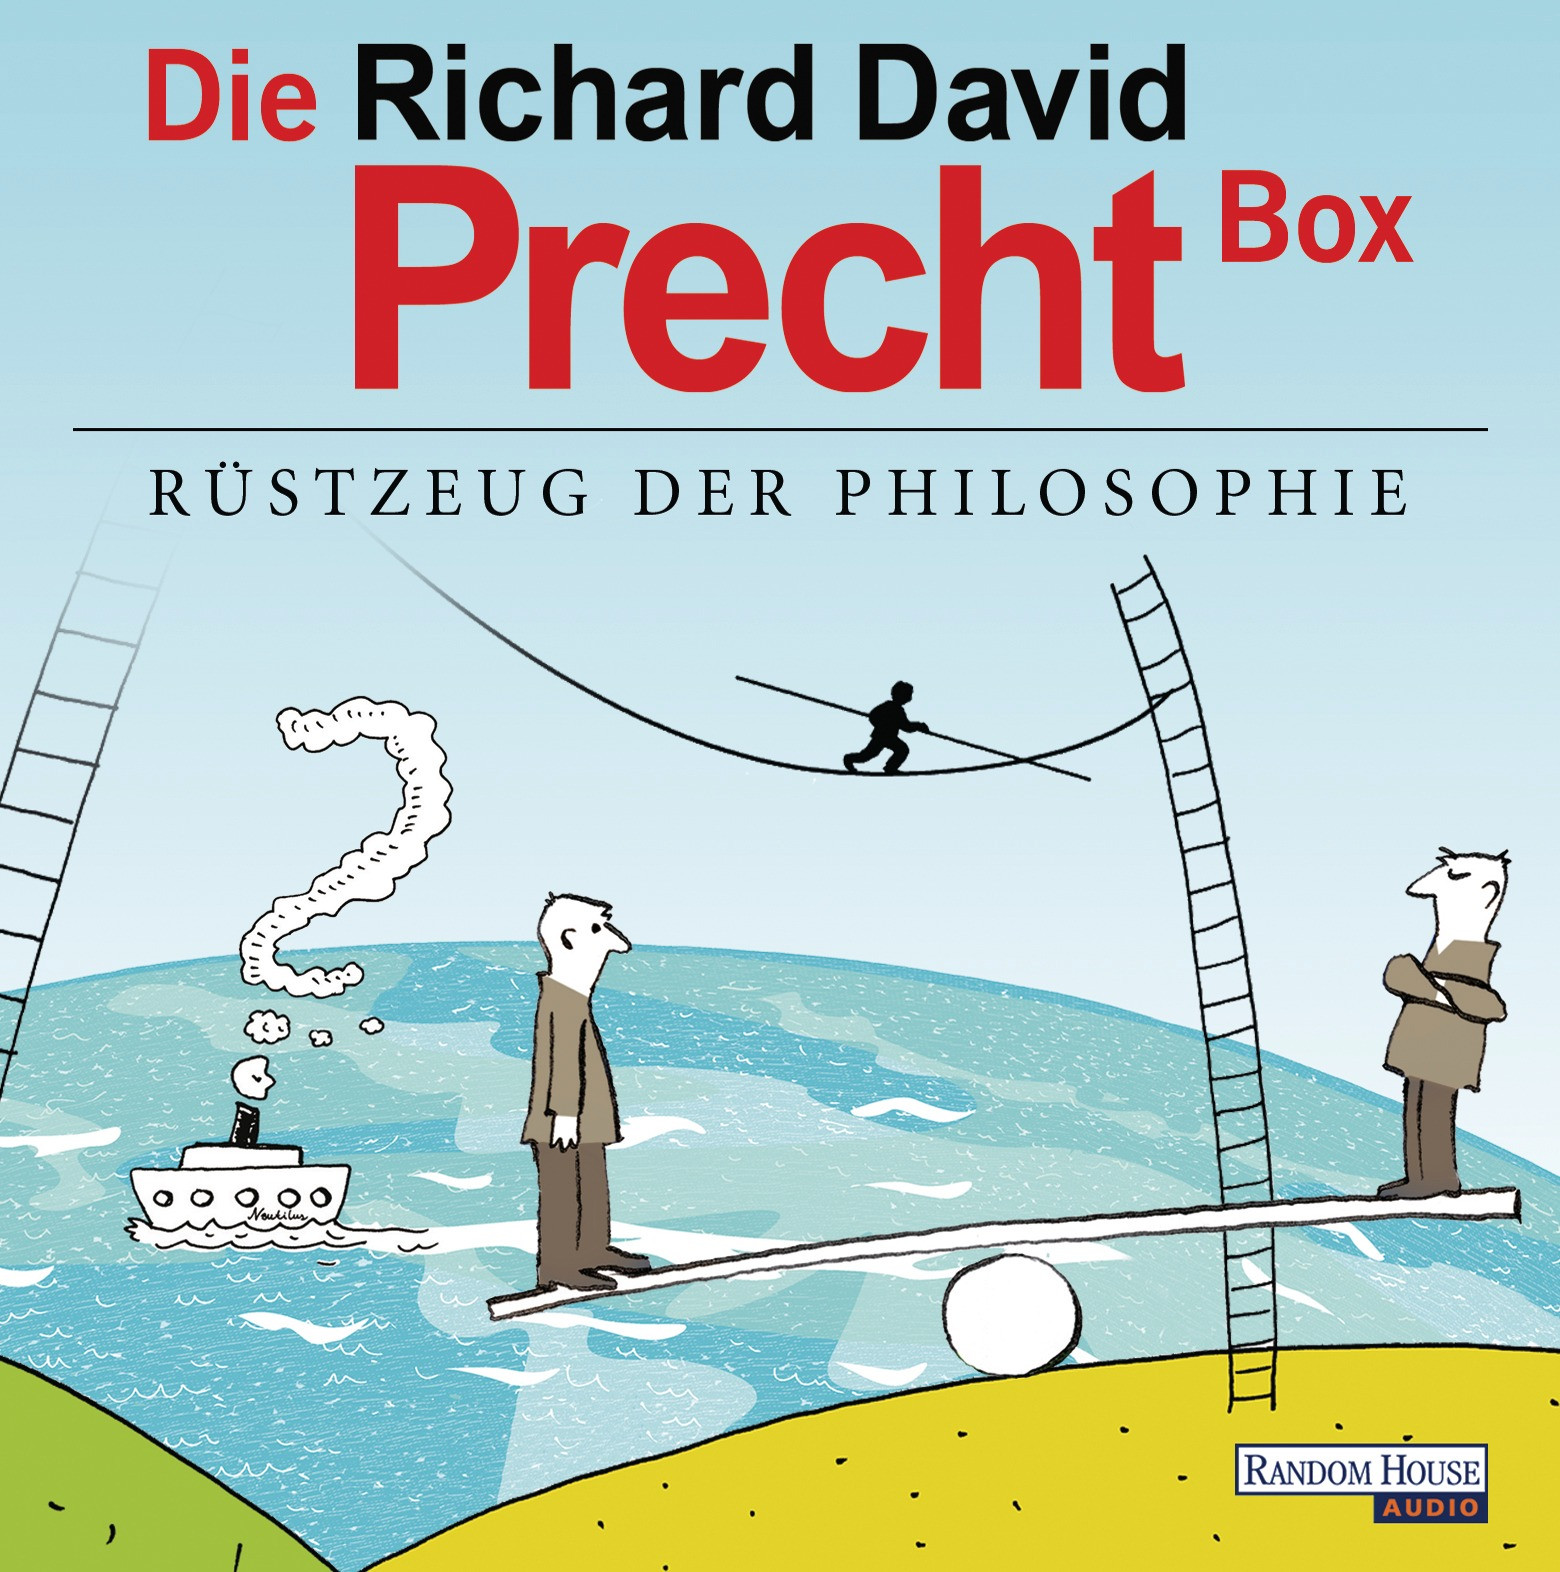 Richard David Precht - Die Richard David Precht Box